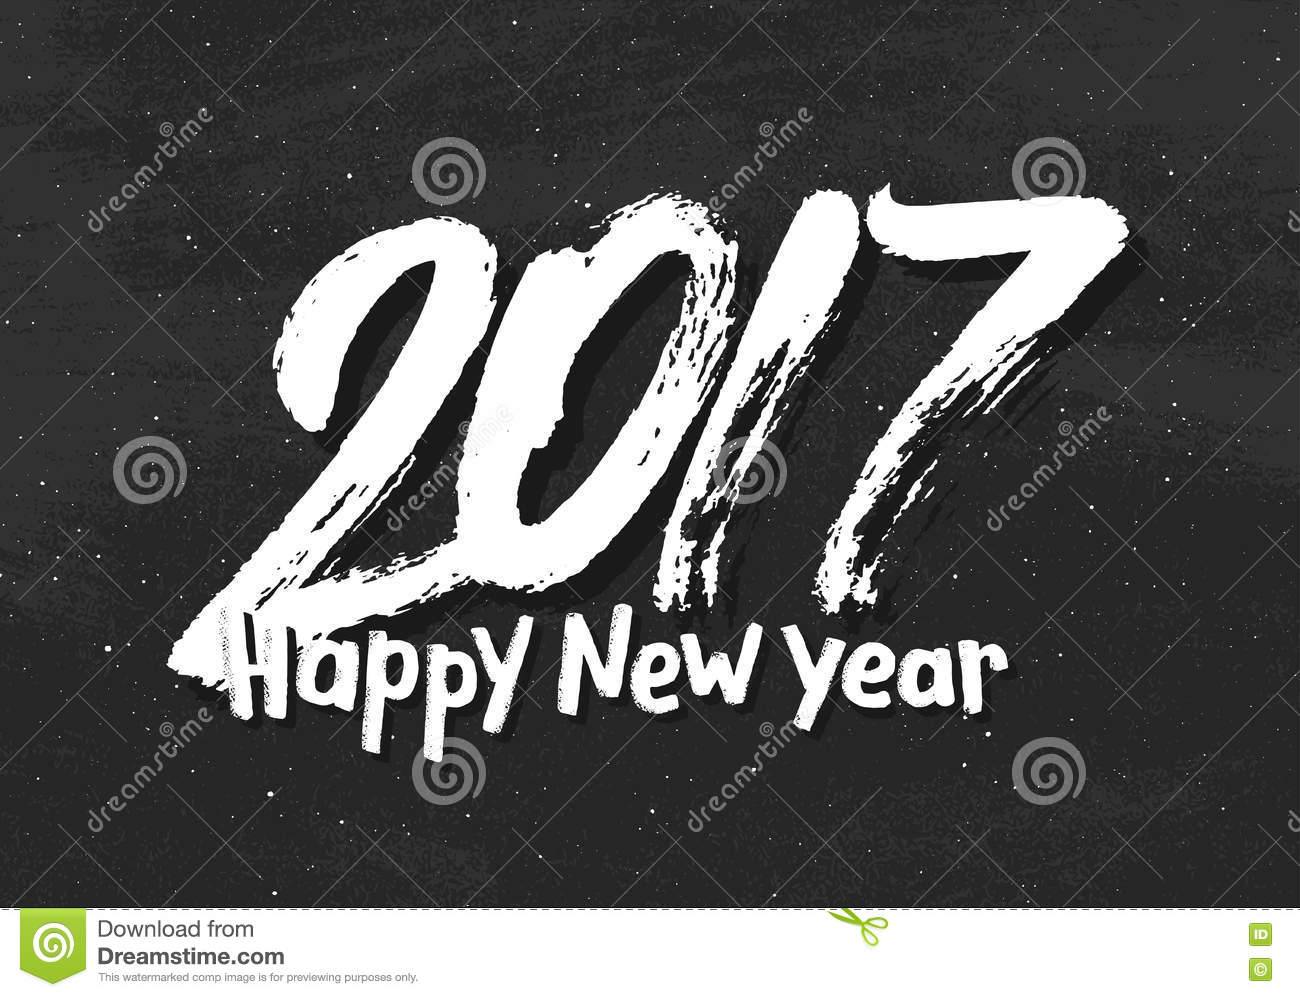 Happy New Year 2017 Greetings On Black Chalkboard Stock Vector  Image 78408358